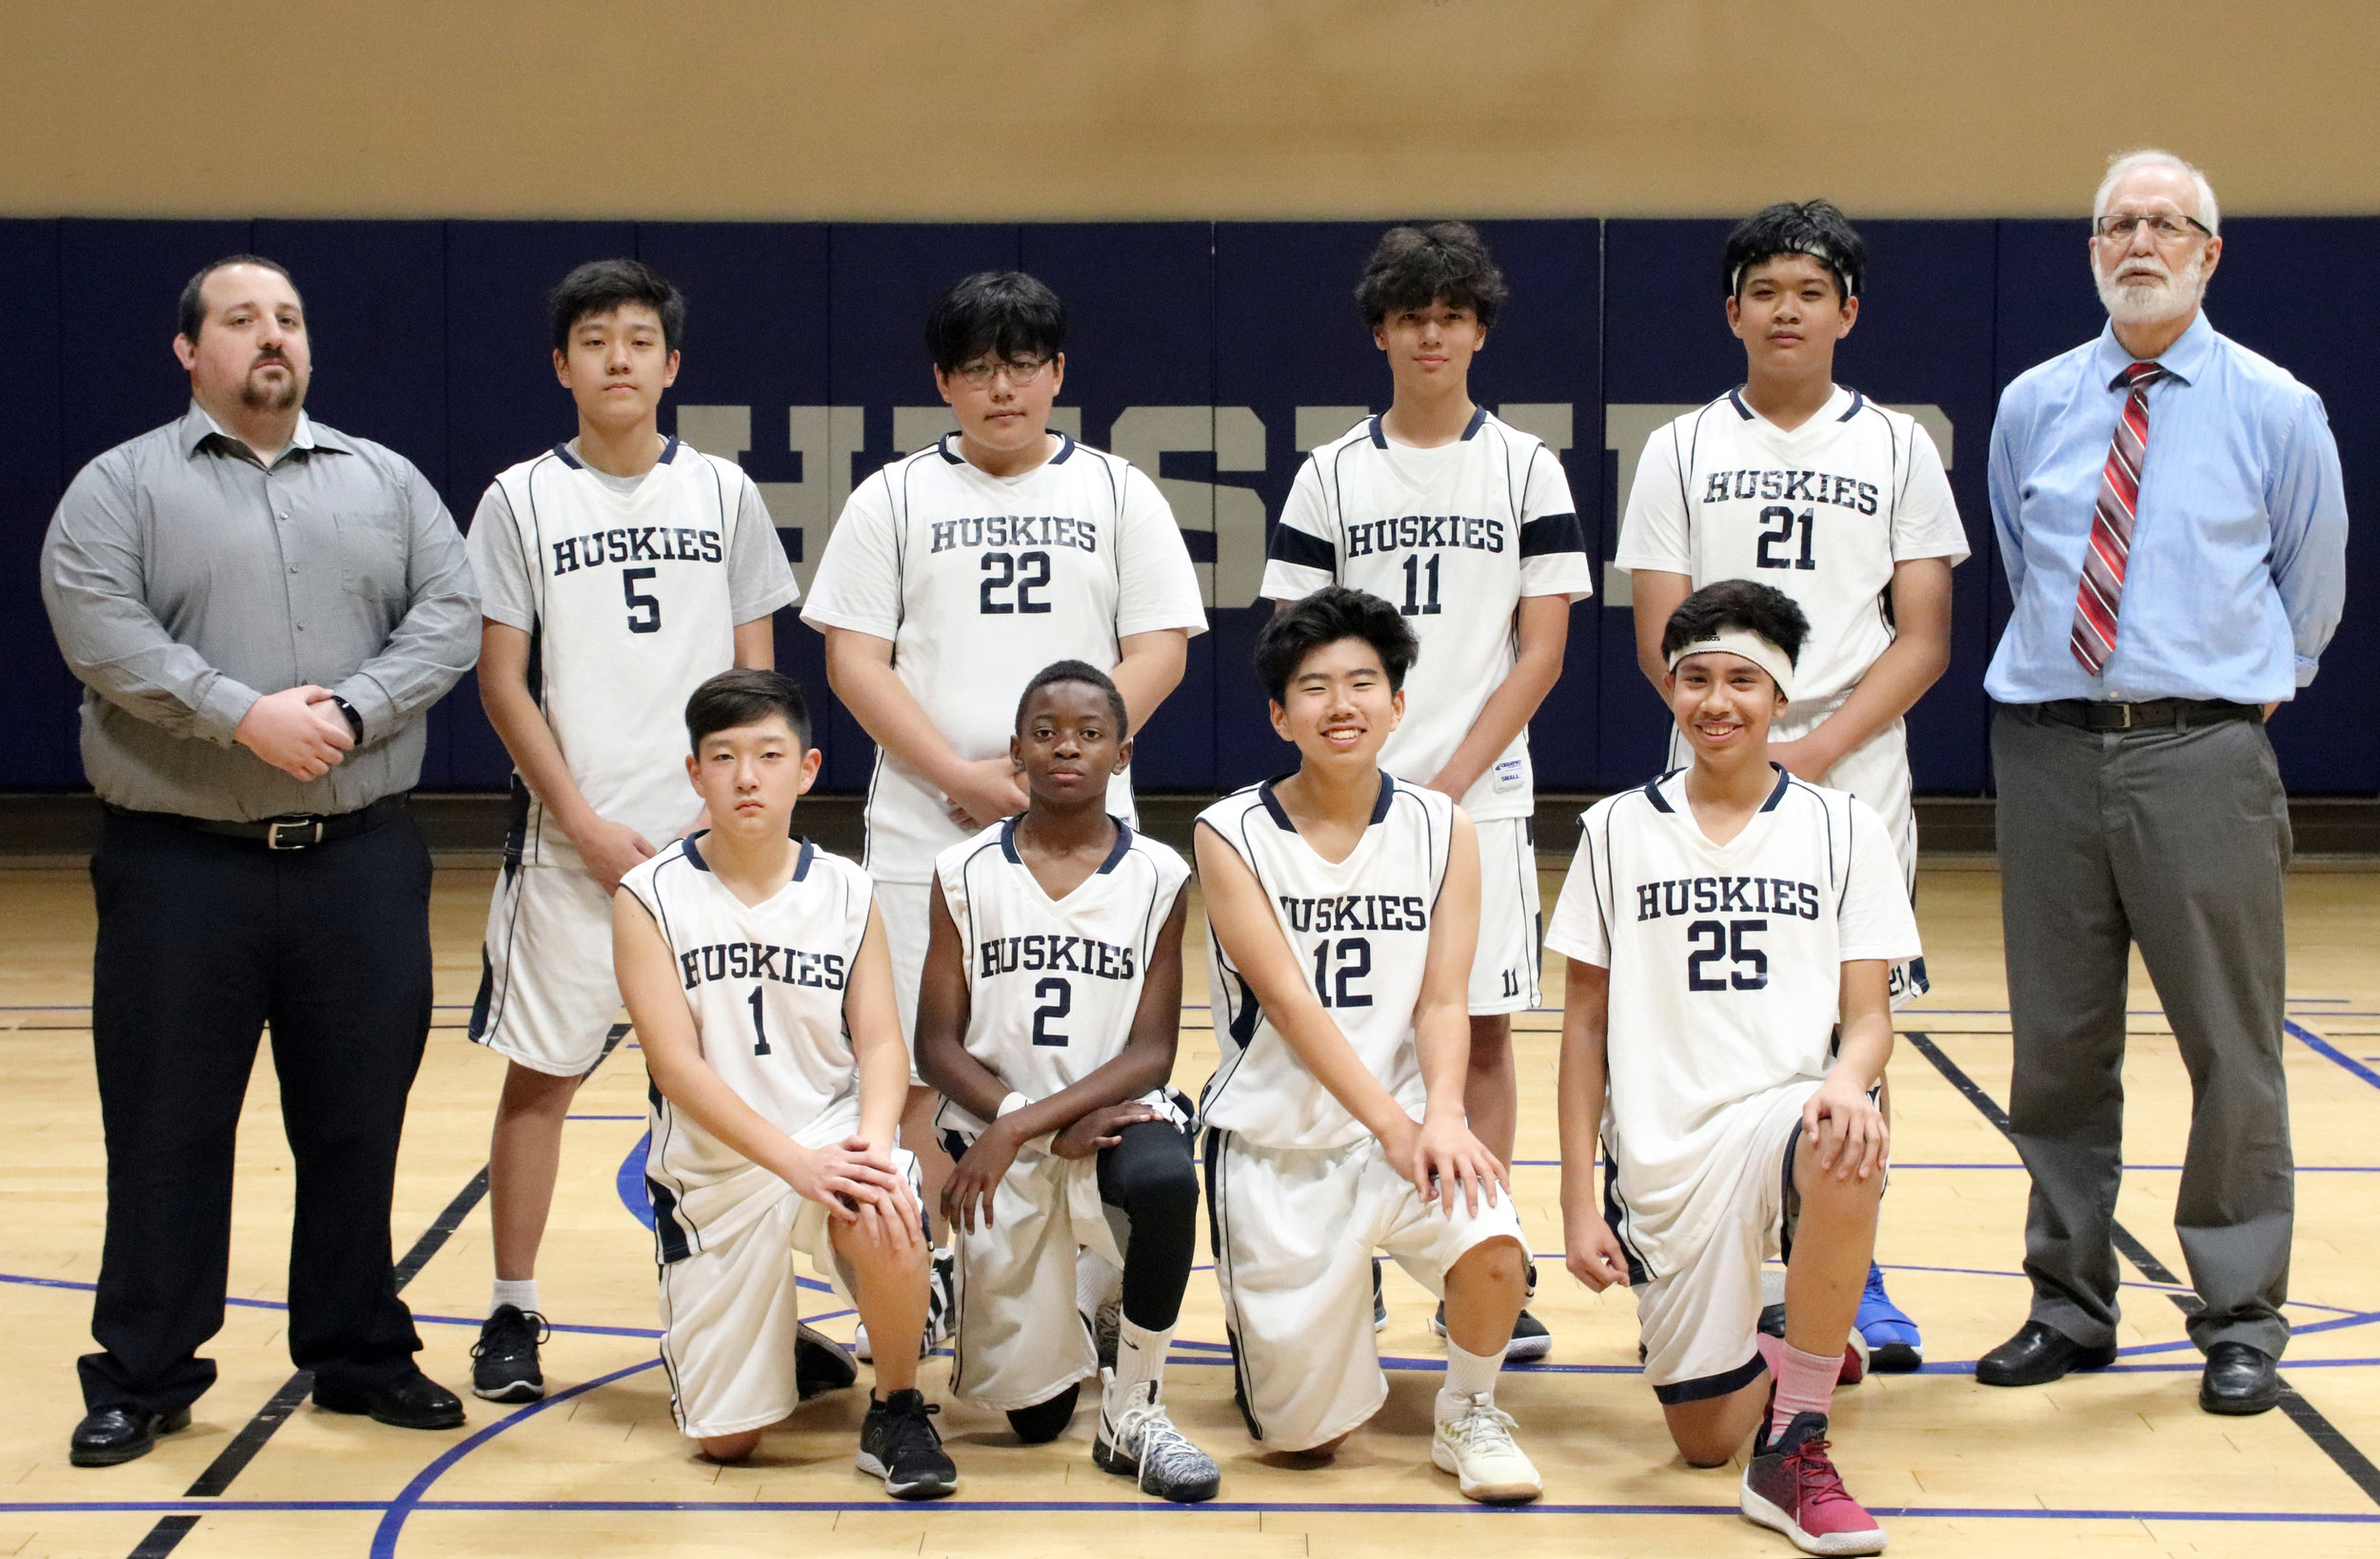 2018-19 Boys Middle School Team